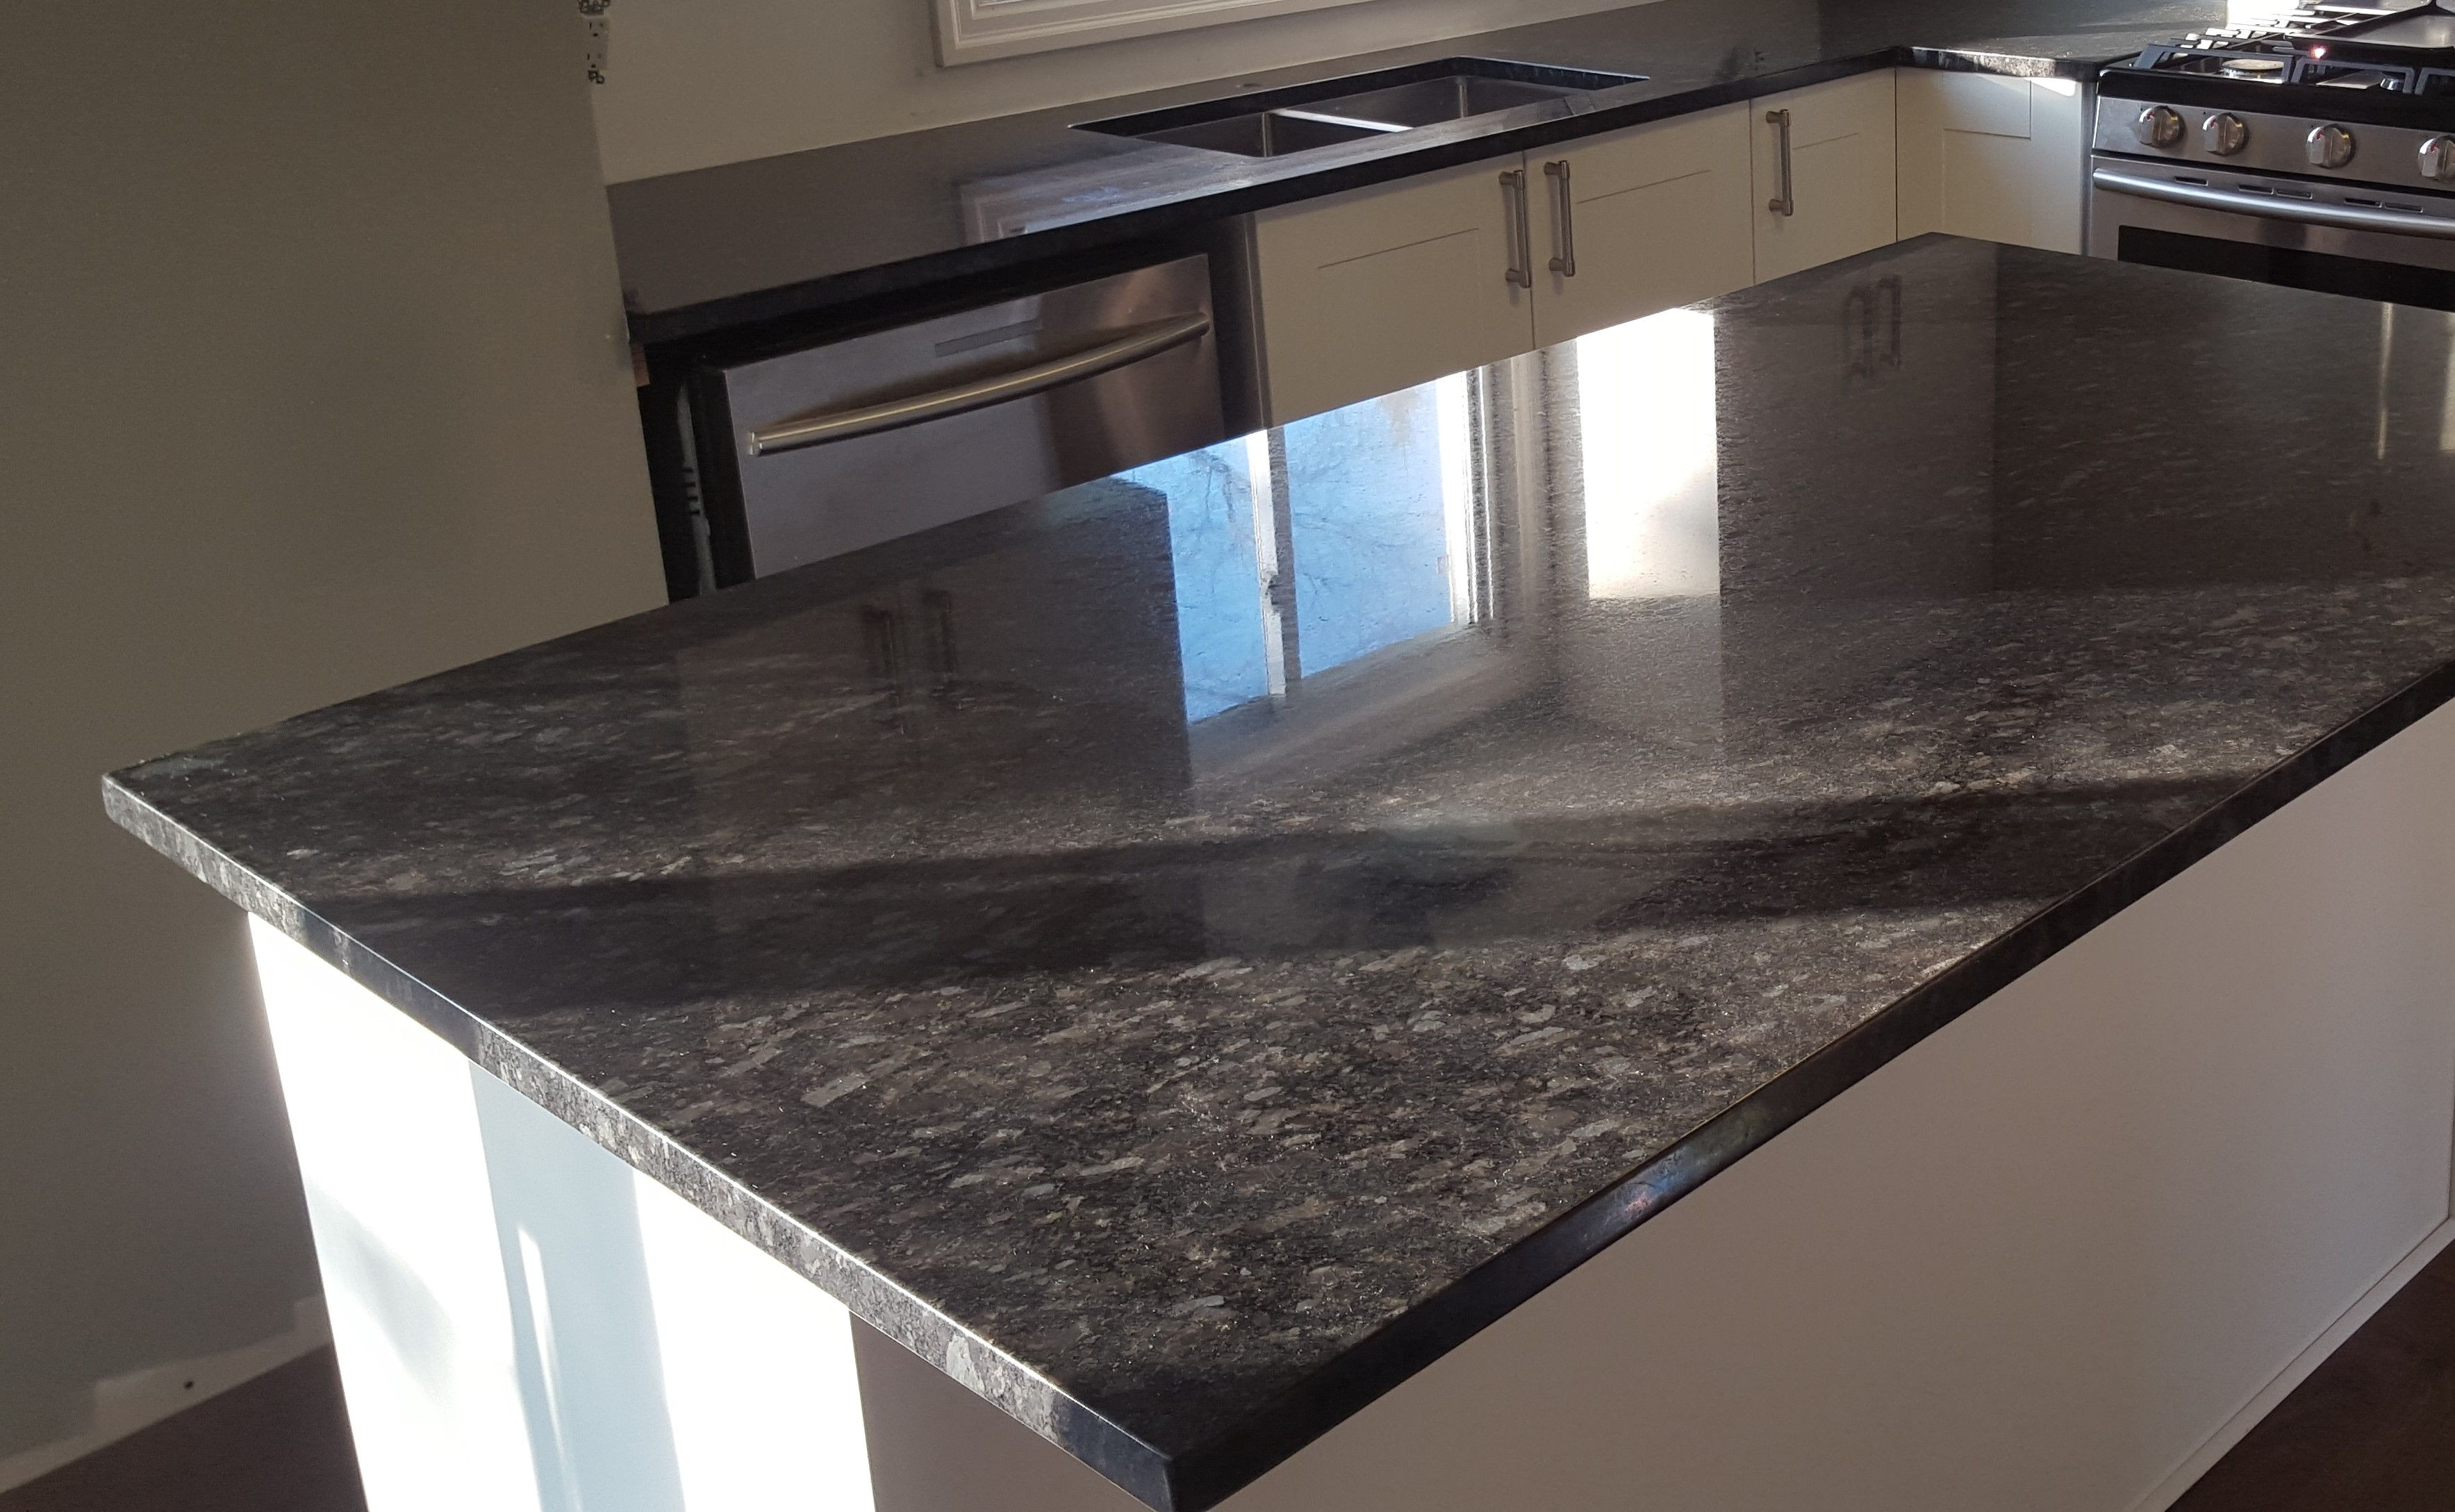 Cool Steel Grey Granite Beautifully Compliments Your White Cabinetry Cabinets And Countertops How To Install Countertops White Cabinetry